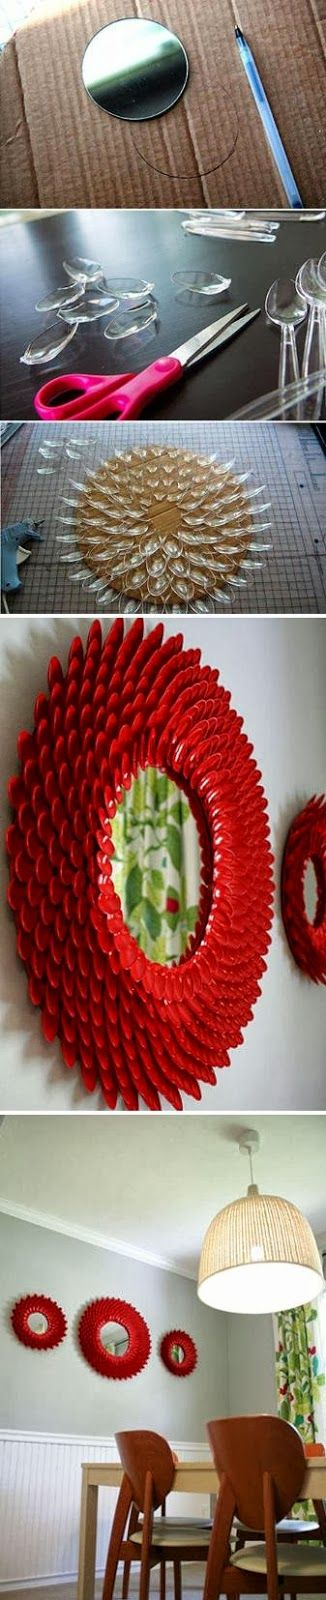 Make a Mirror from Plastic Spoon. Beautiful